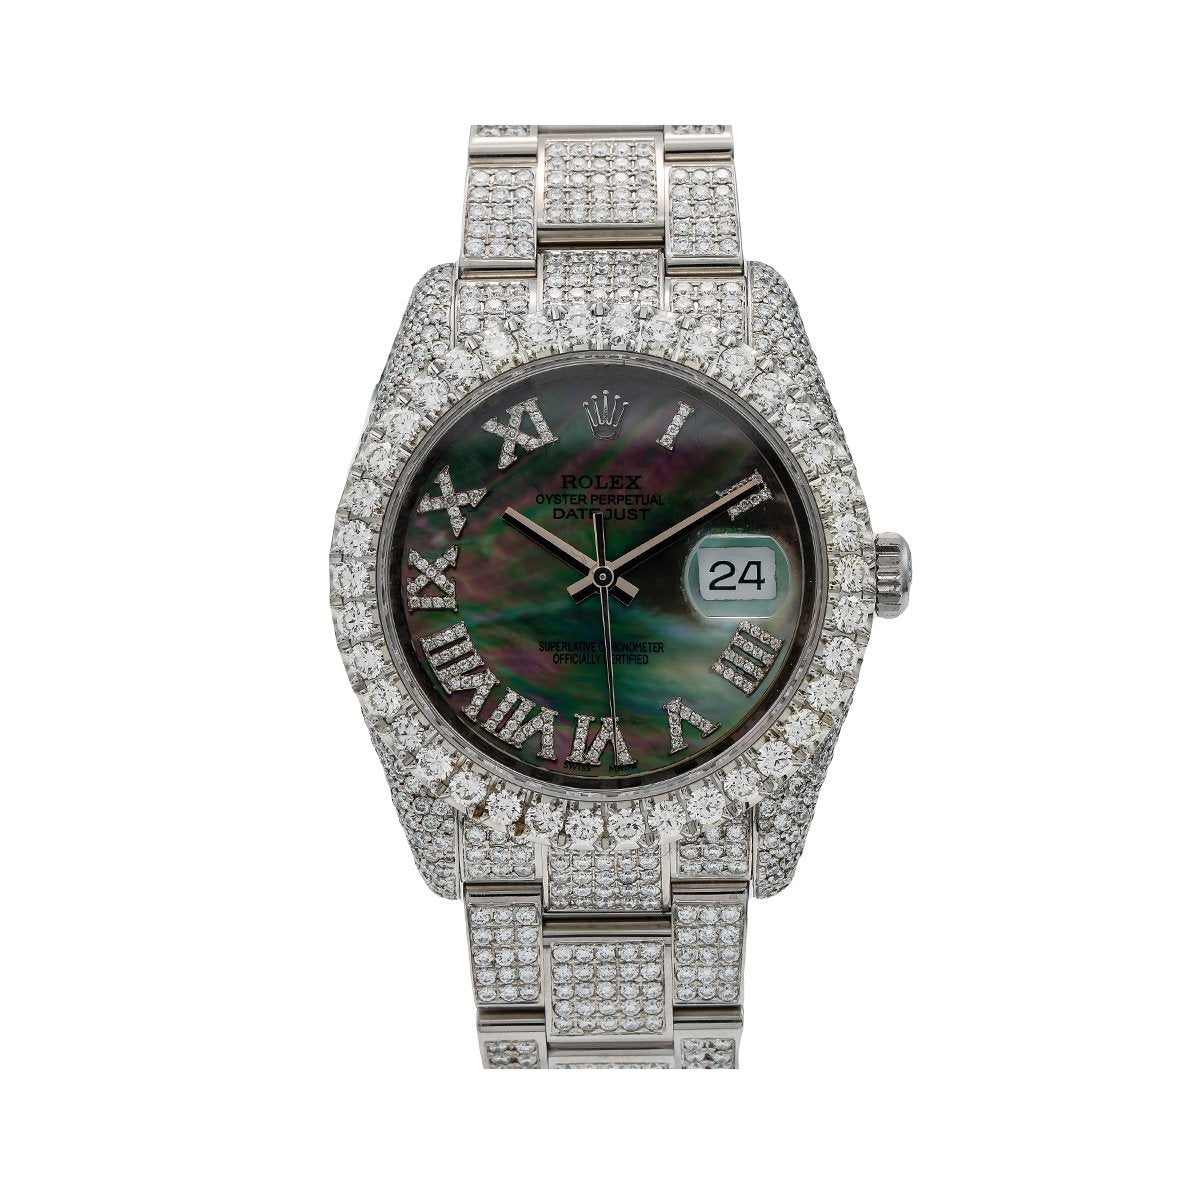 Rolex Datejust Diamond Watch, 116234 40mm, Mother of Pearl Dial With 12.05 CT Diamonds